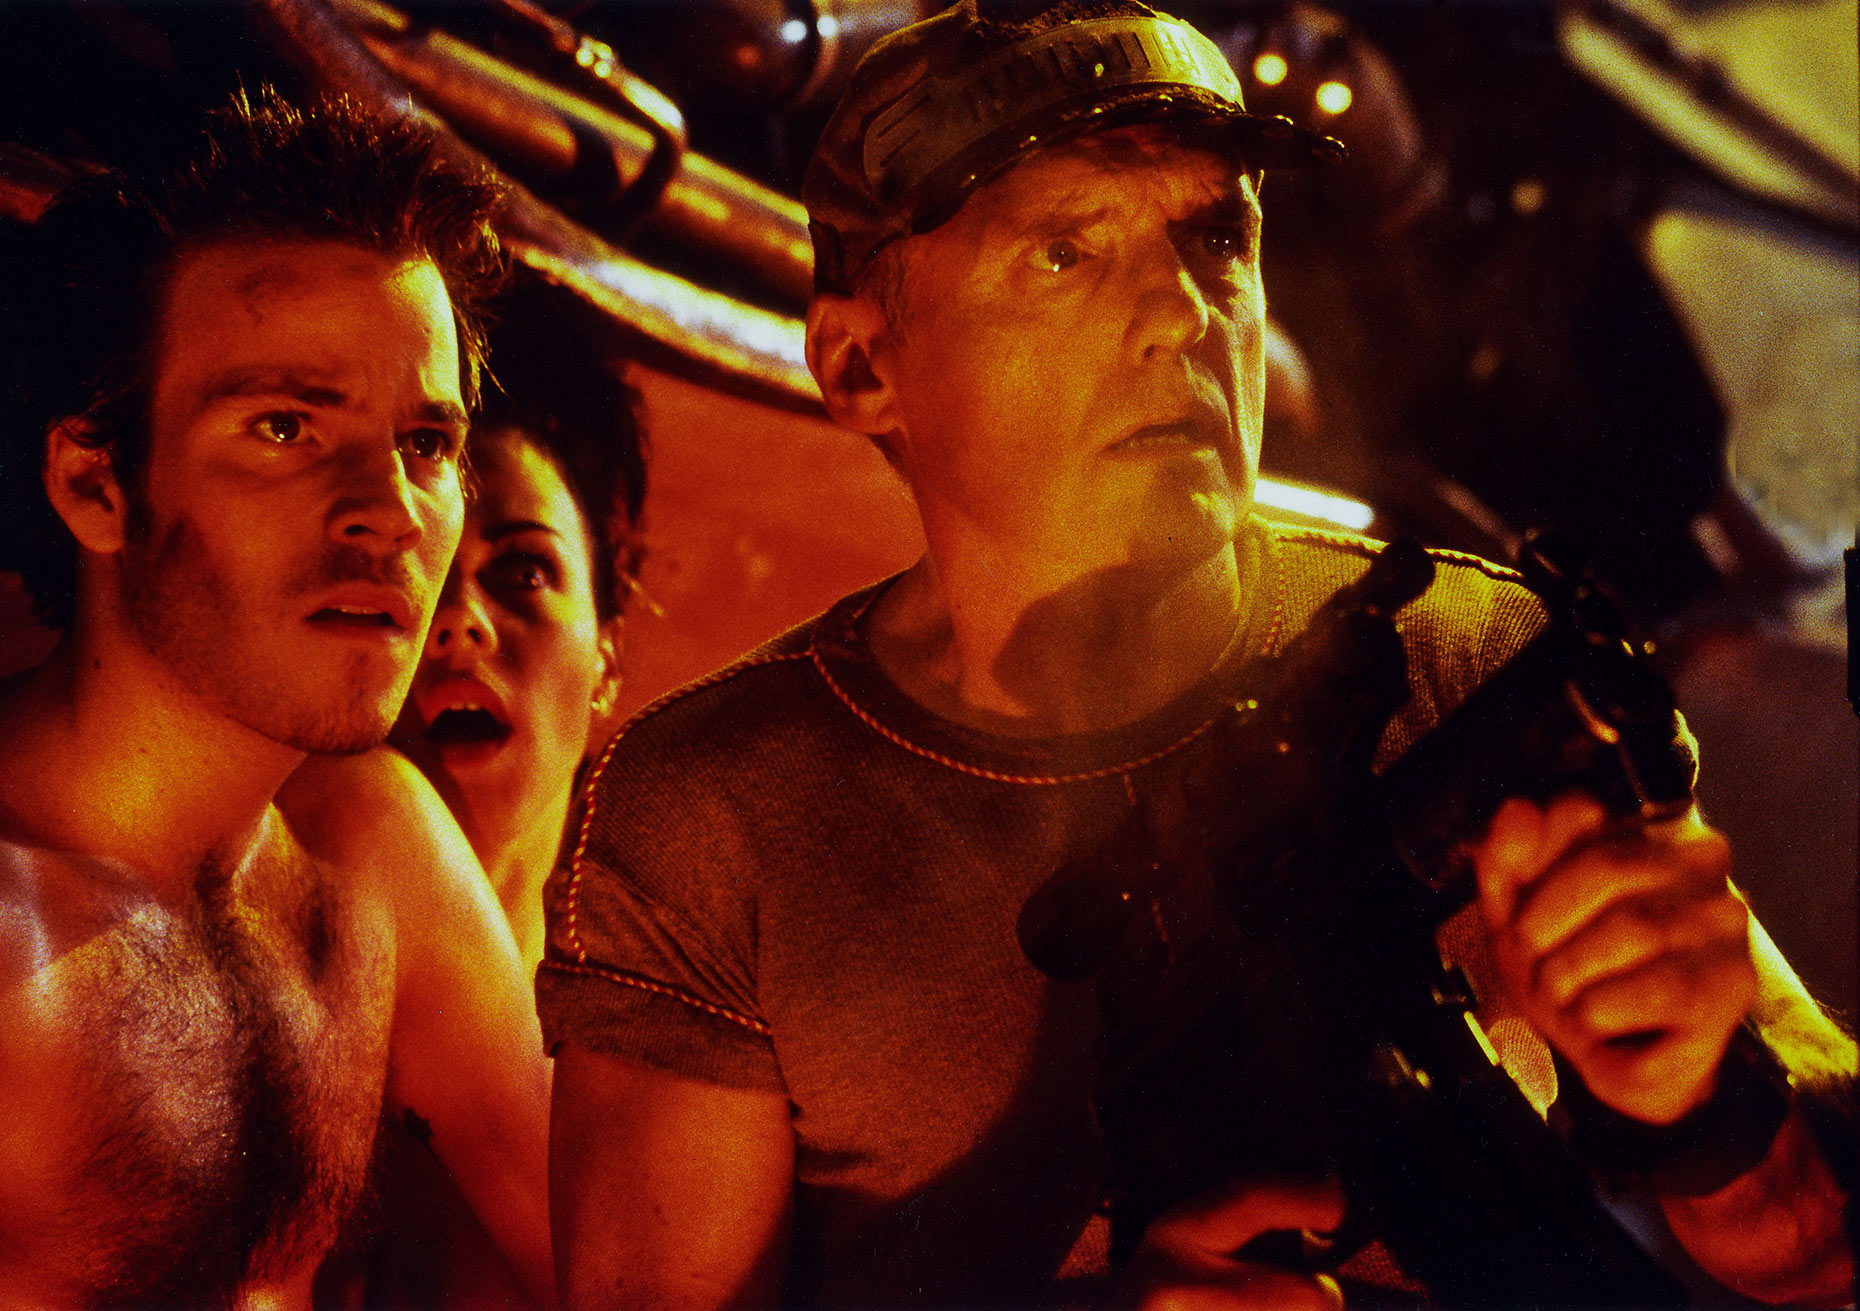 SPACE TRUCKERS : Stephen Dorff, Debi Mazar and Dennis Hopper